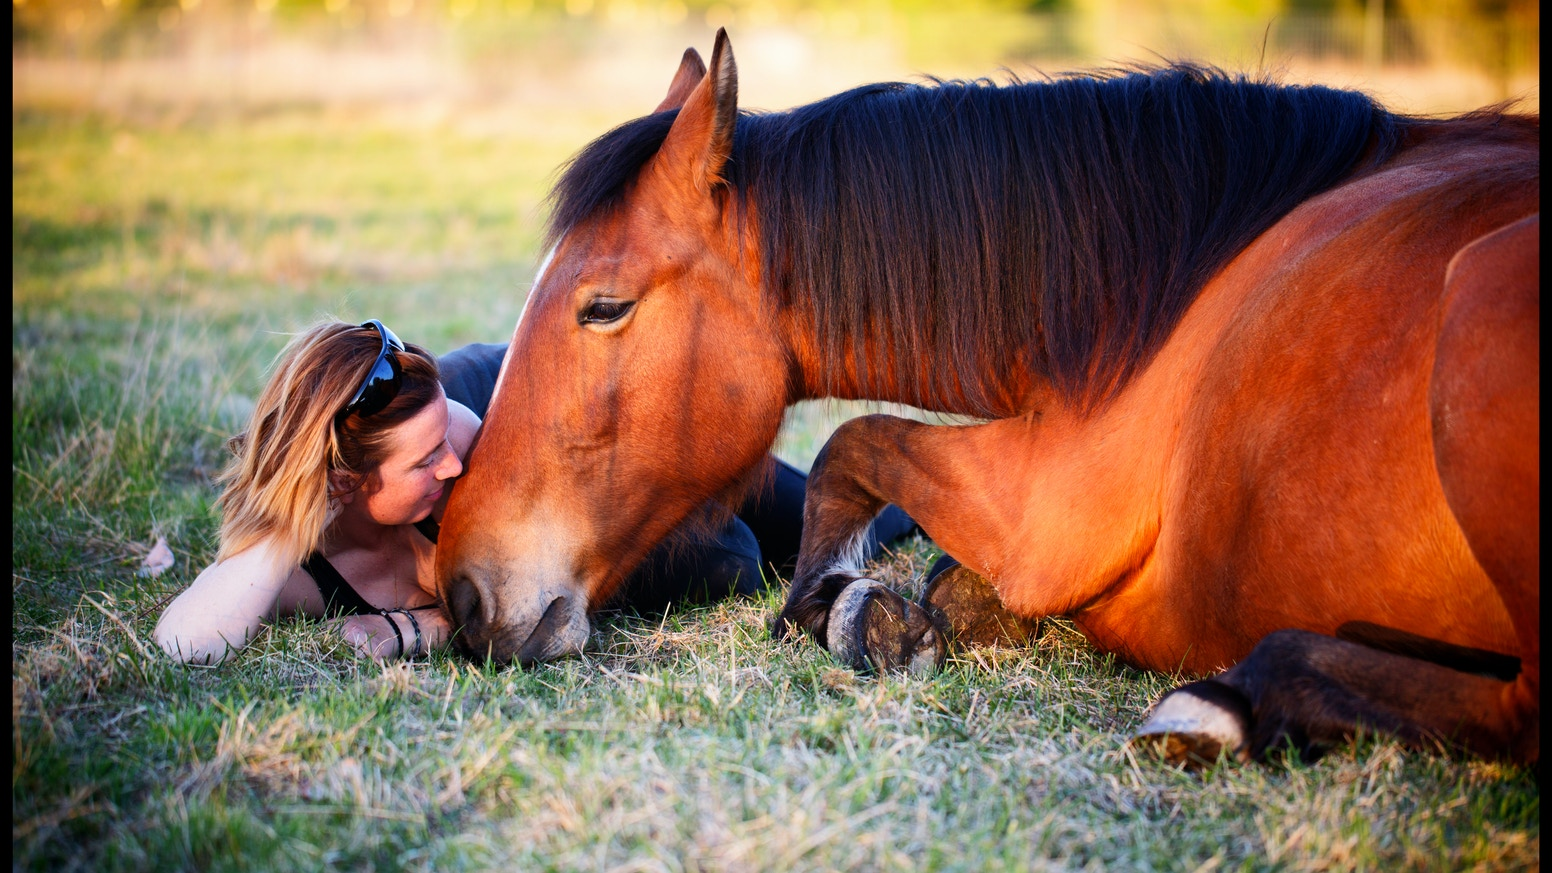 This movie will explore training in movement as we trek across Costa Rica with two rescued horses toward their second chance at life.